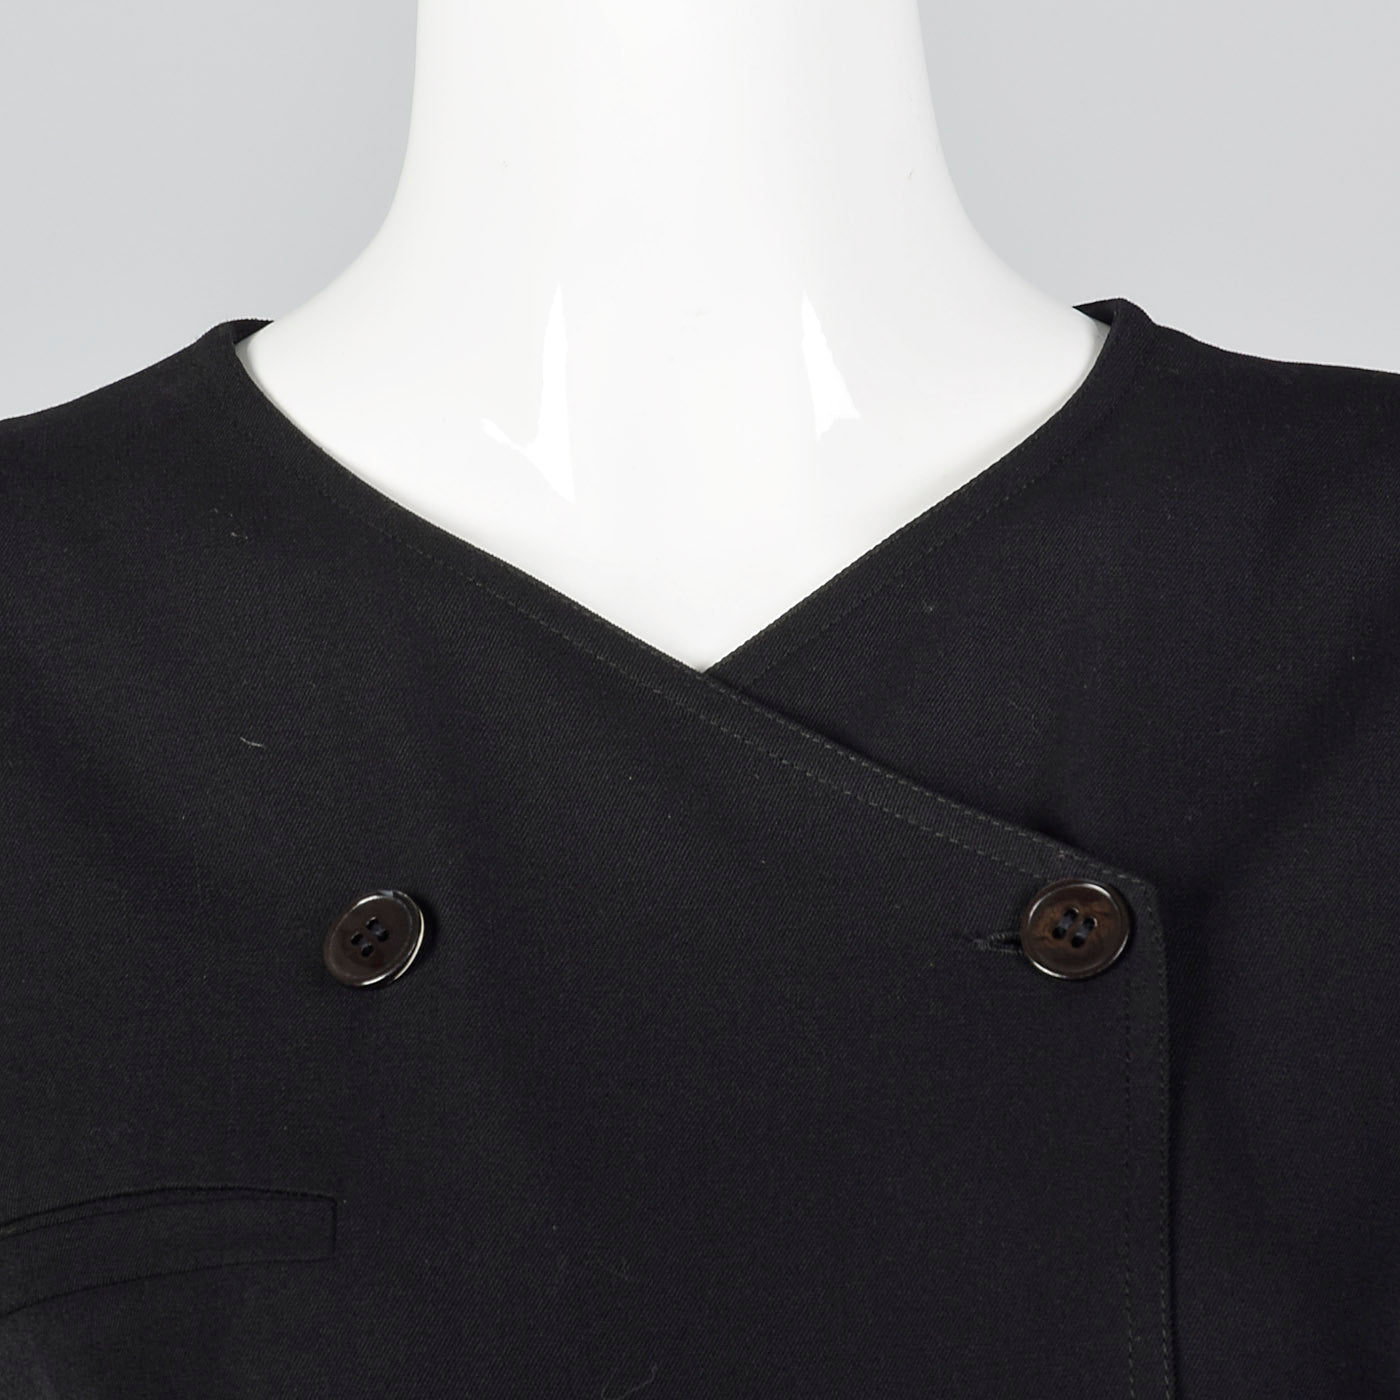 1990s Valentino Black Wool Sack Dress with a Pleated Back